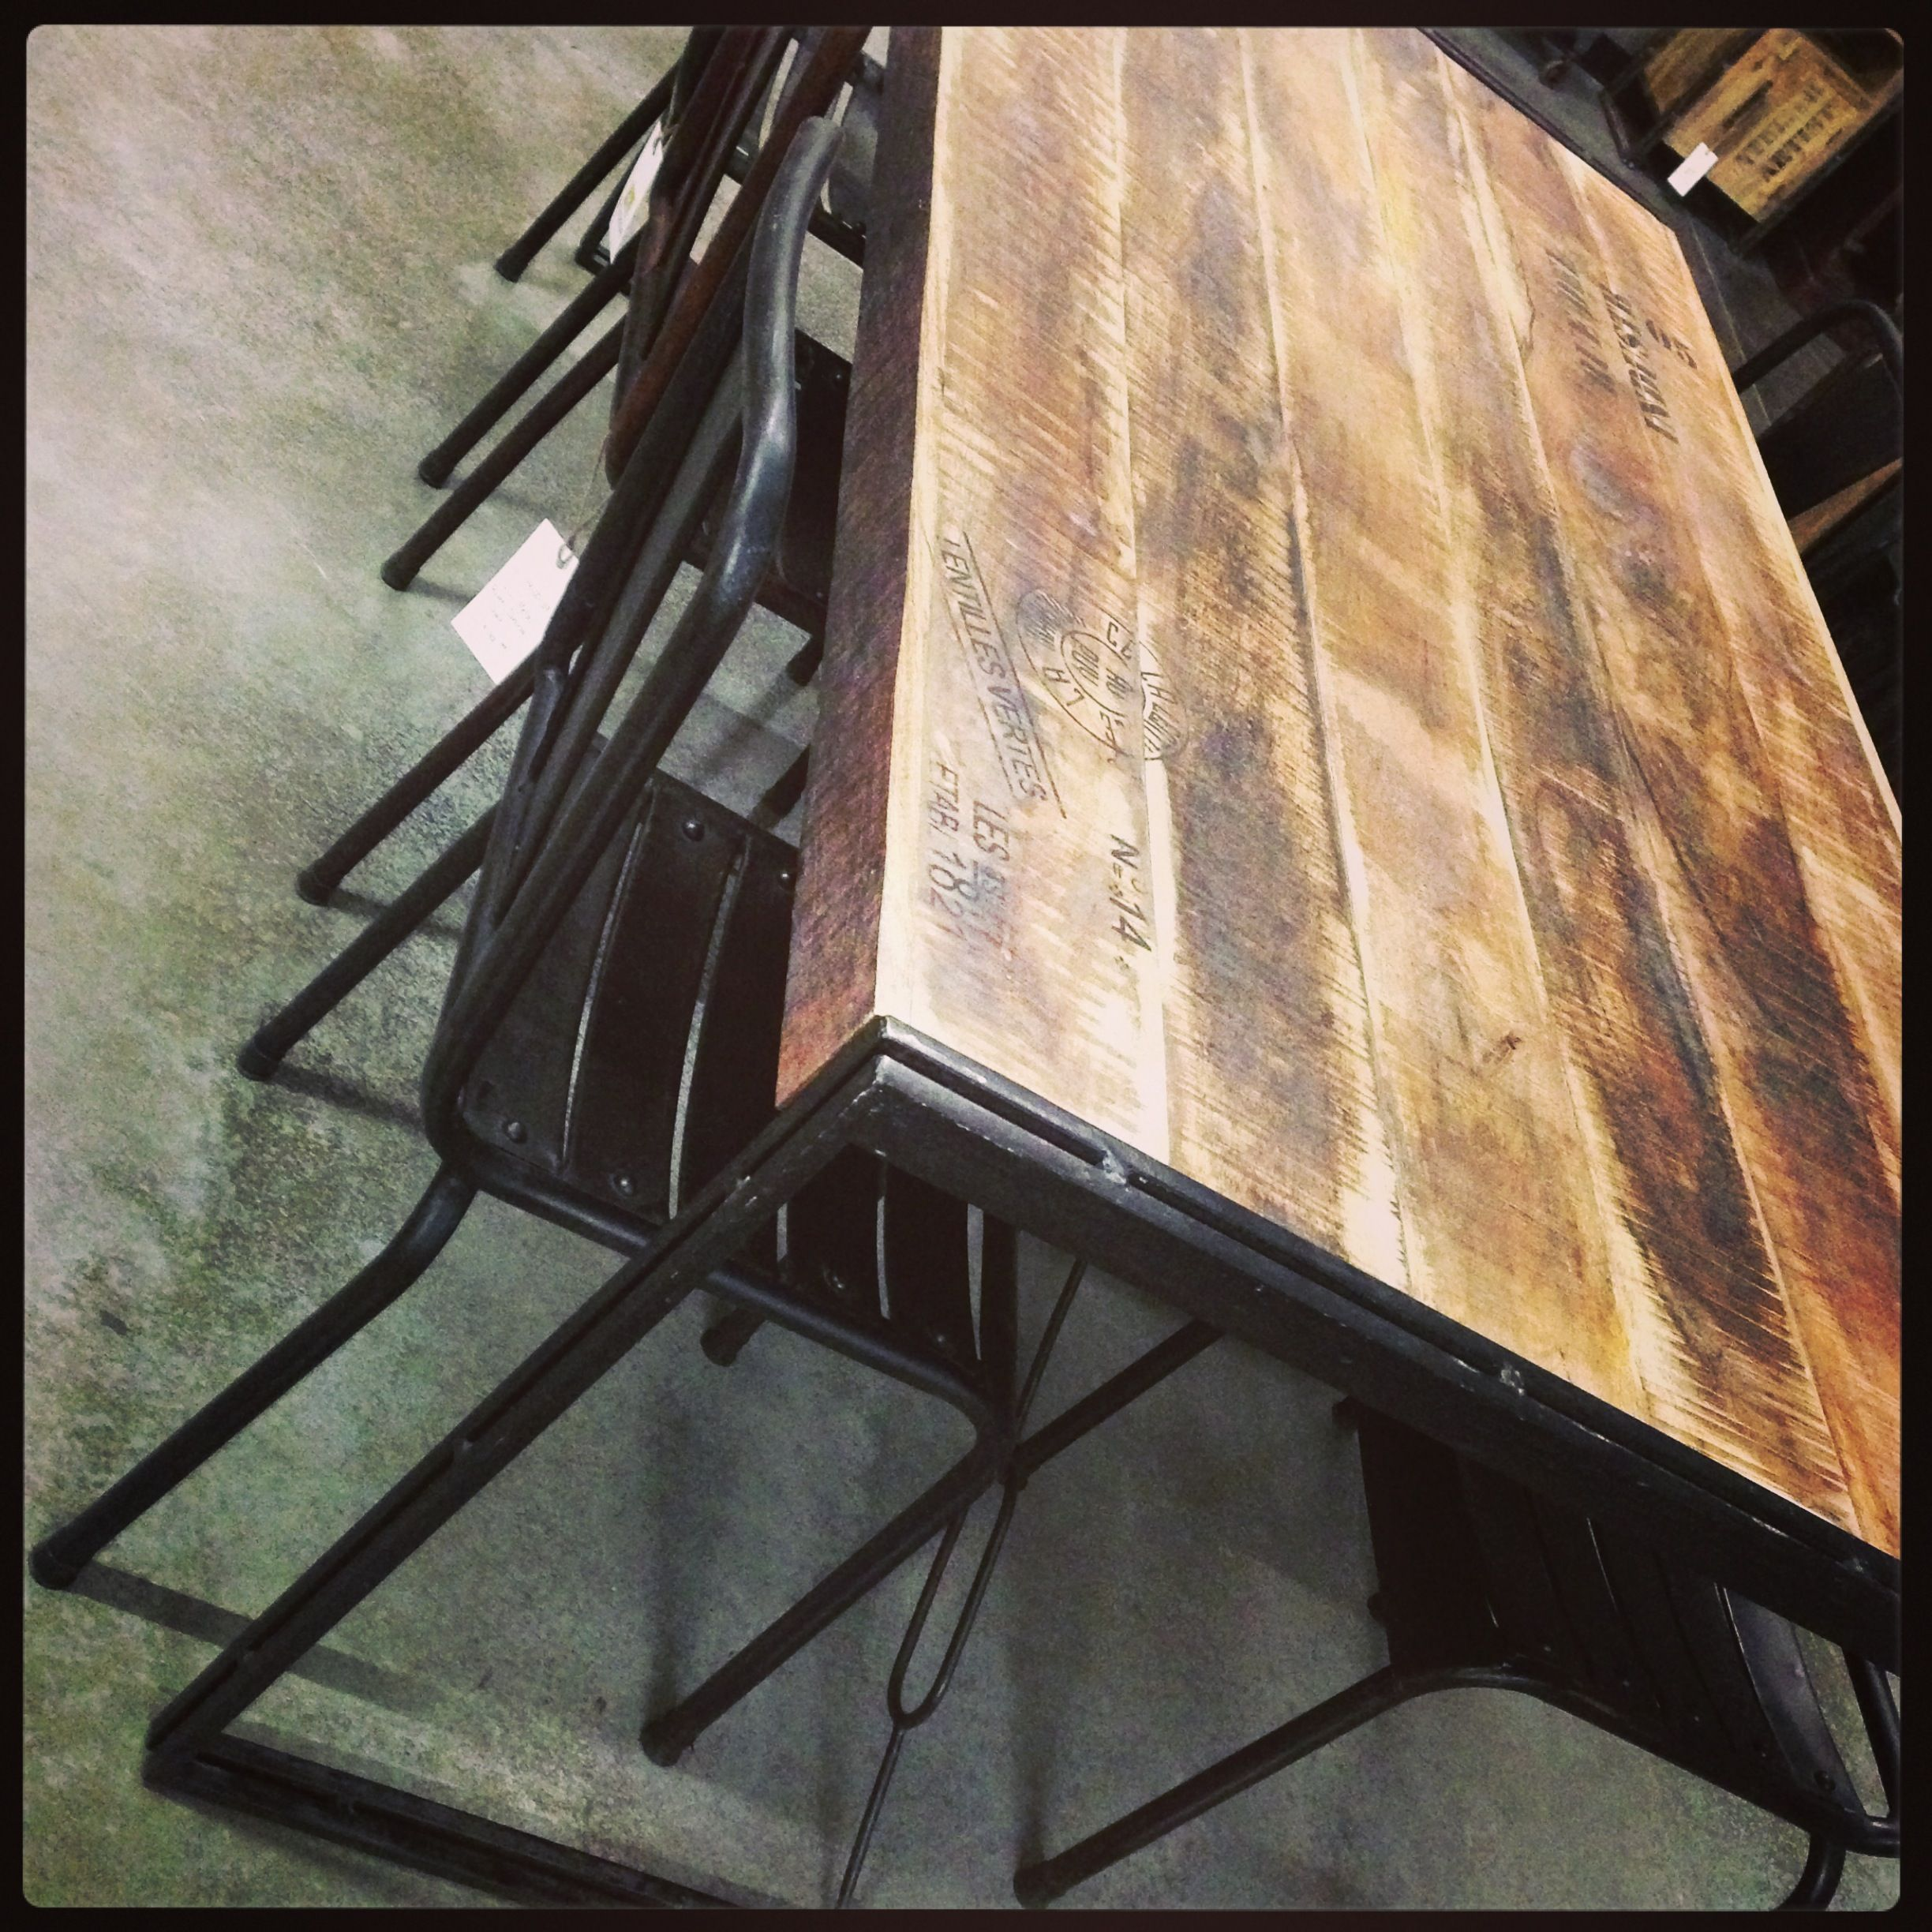 French Script Dining Table, Industrial Style Wood And Metal With Metal  Rivet Chairs Unique Furniture